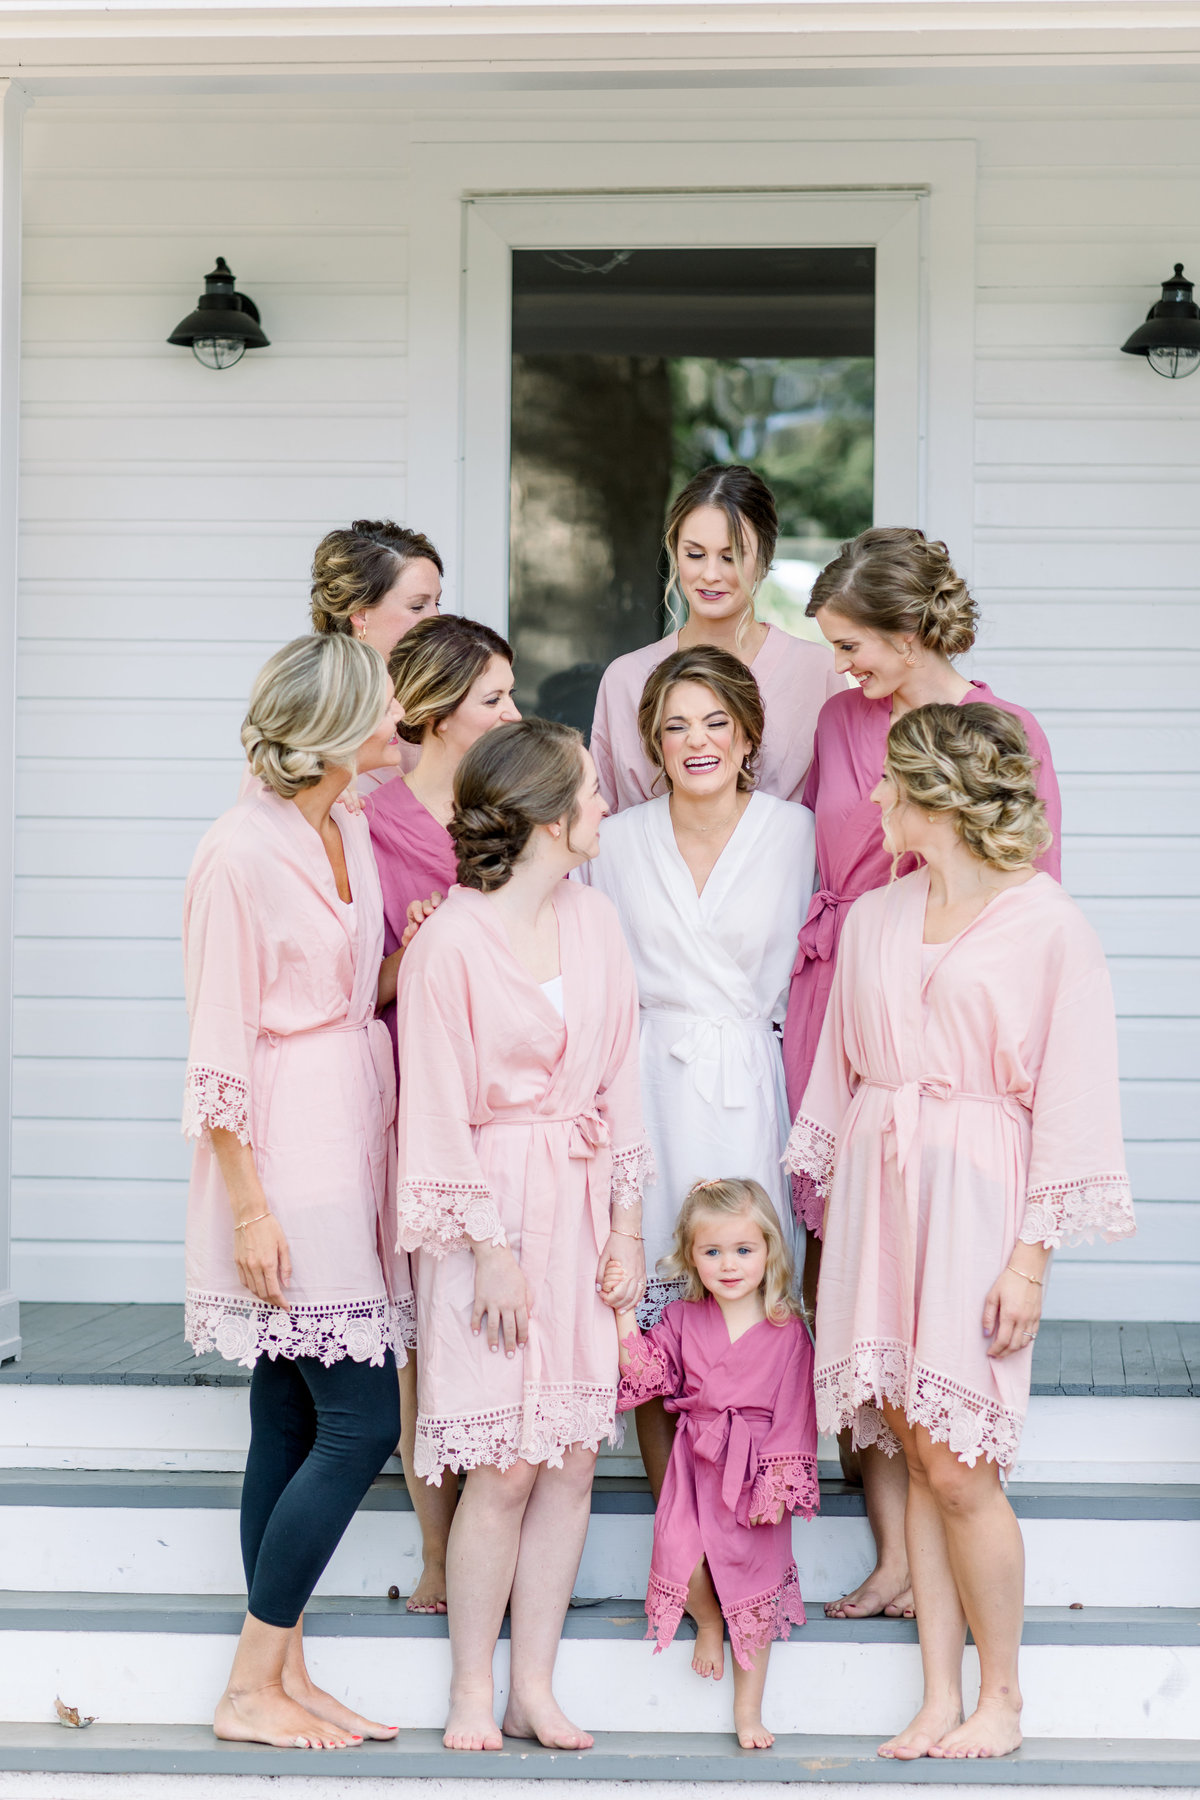 Washington DC Wedding Photography, bride and bridal party standing together in robes